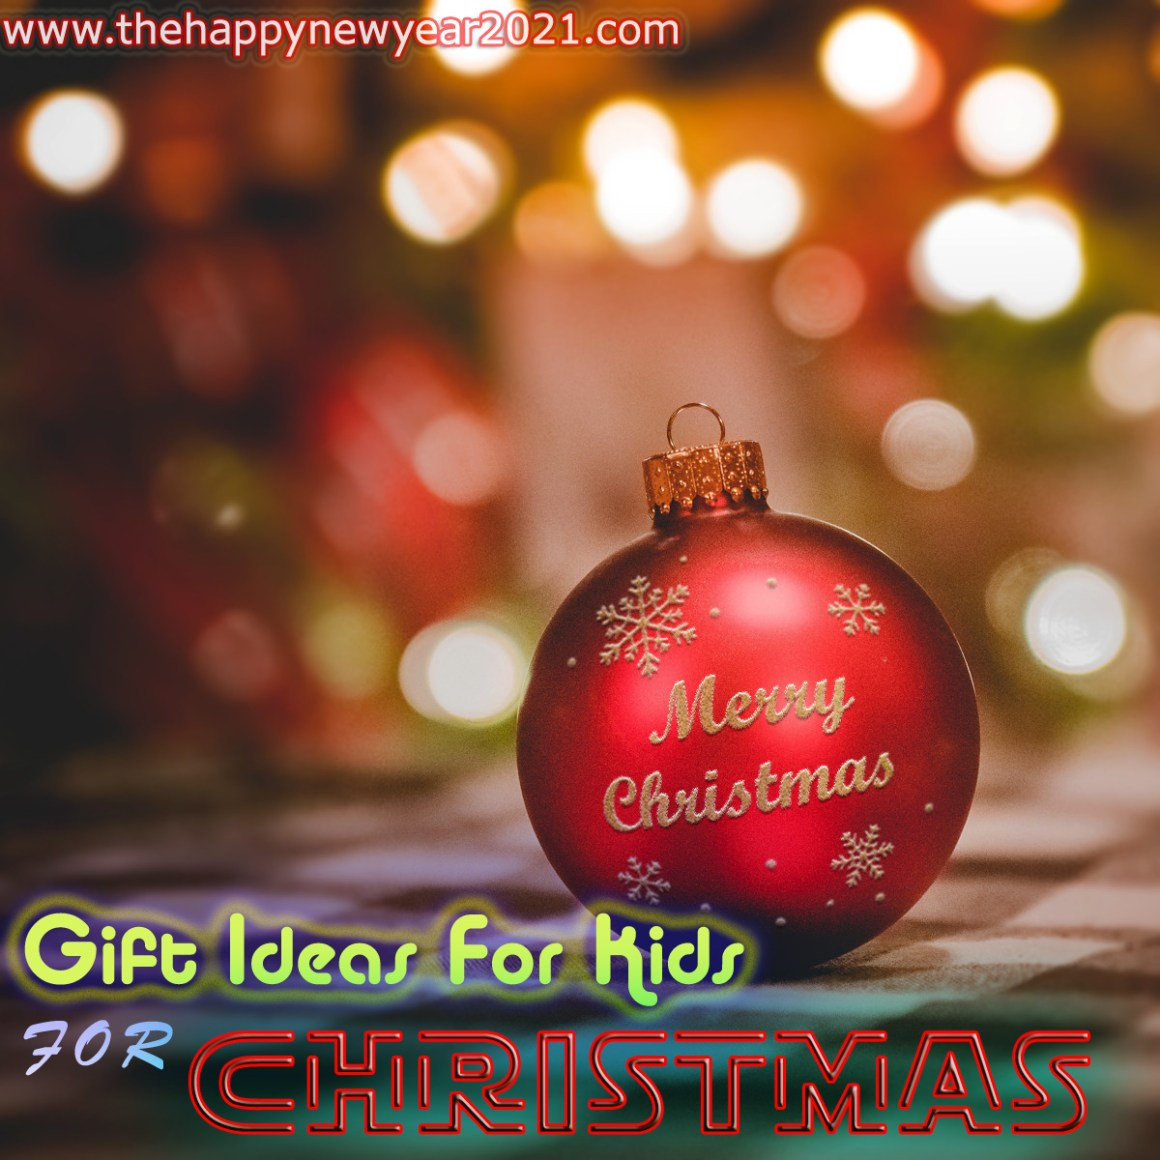 Best Merry Christmas Gifts For Kids 2020